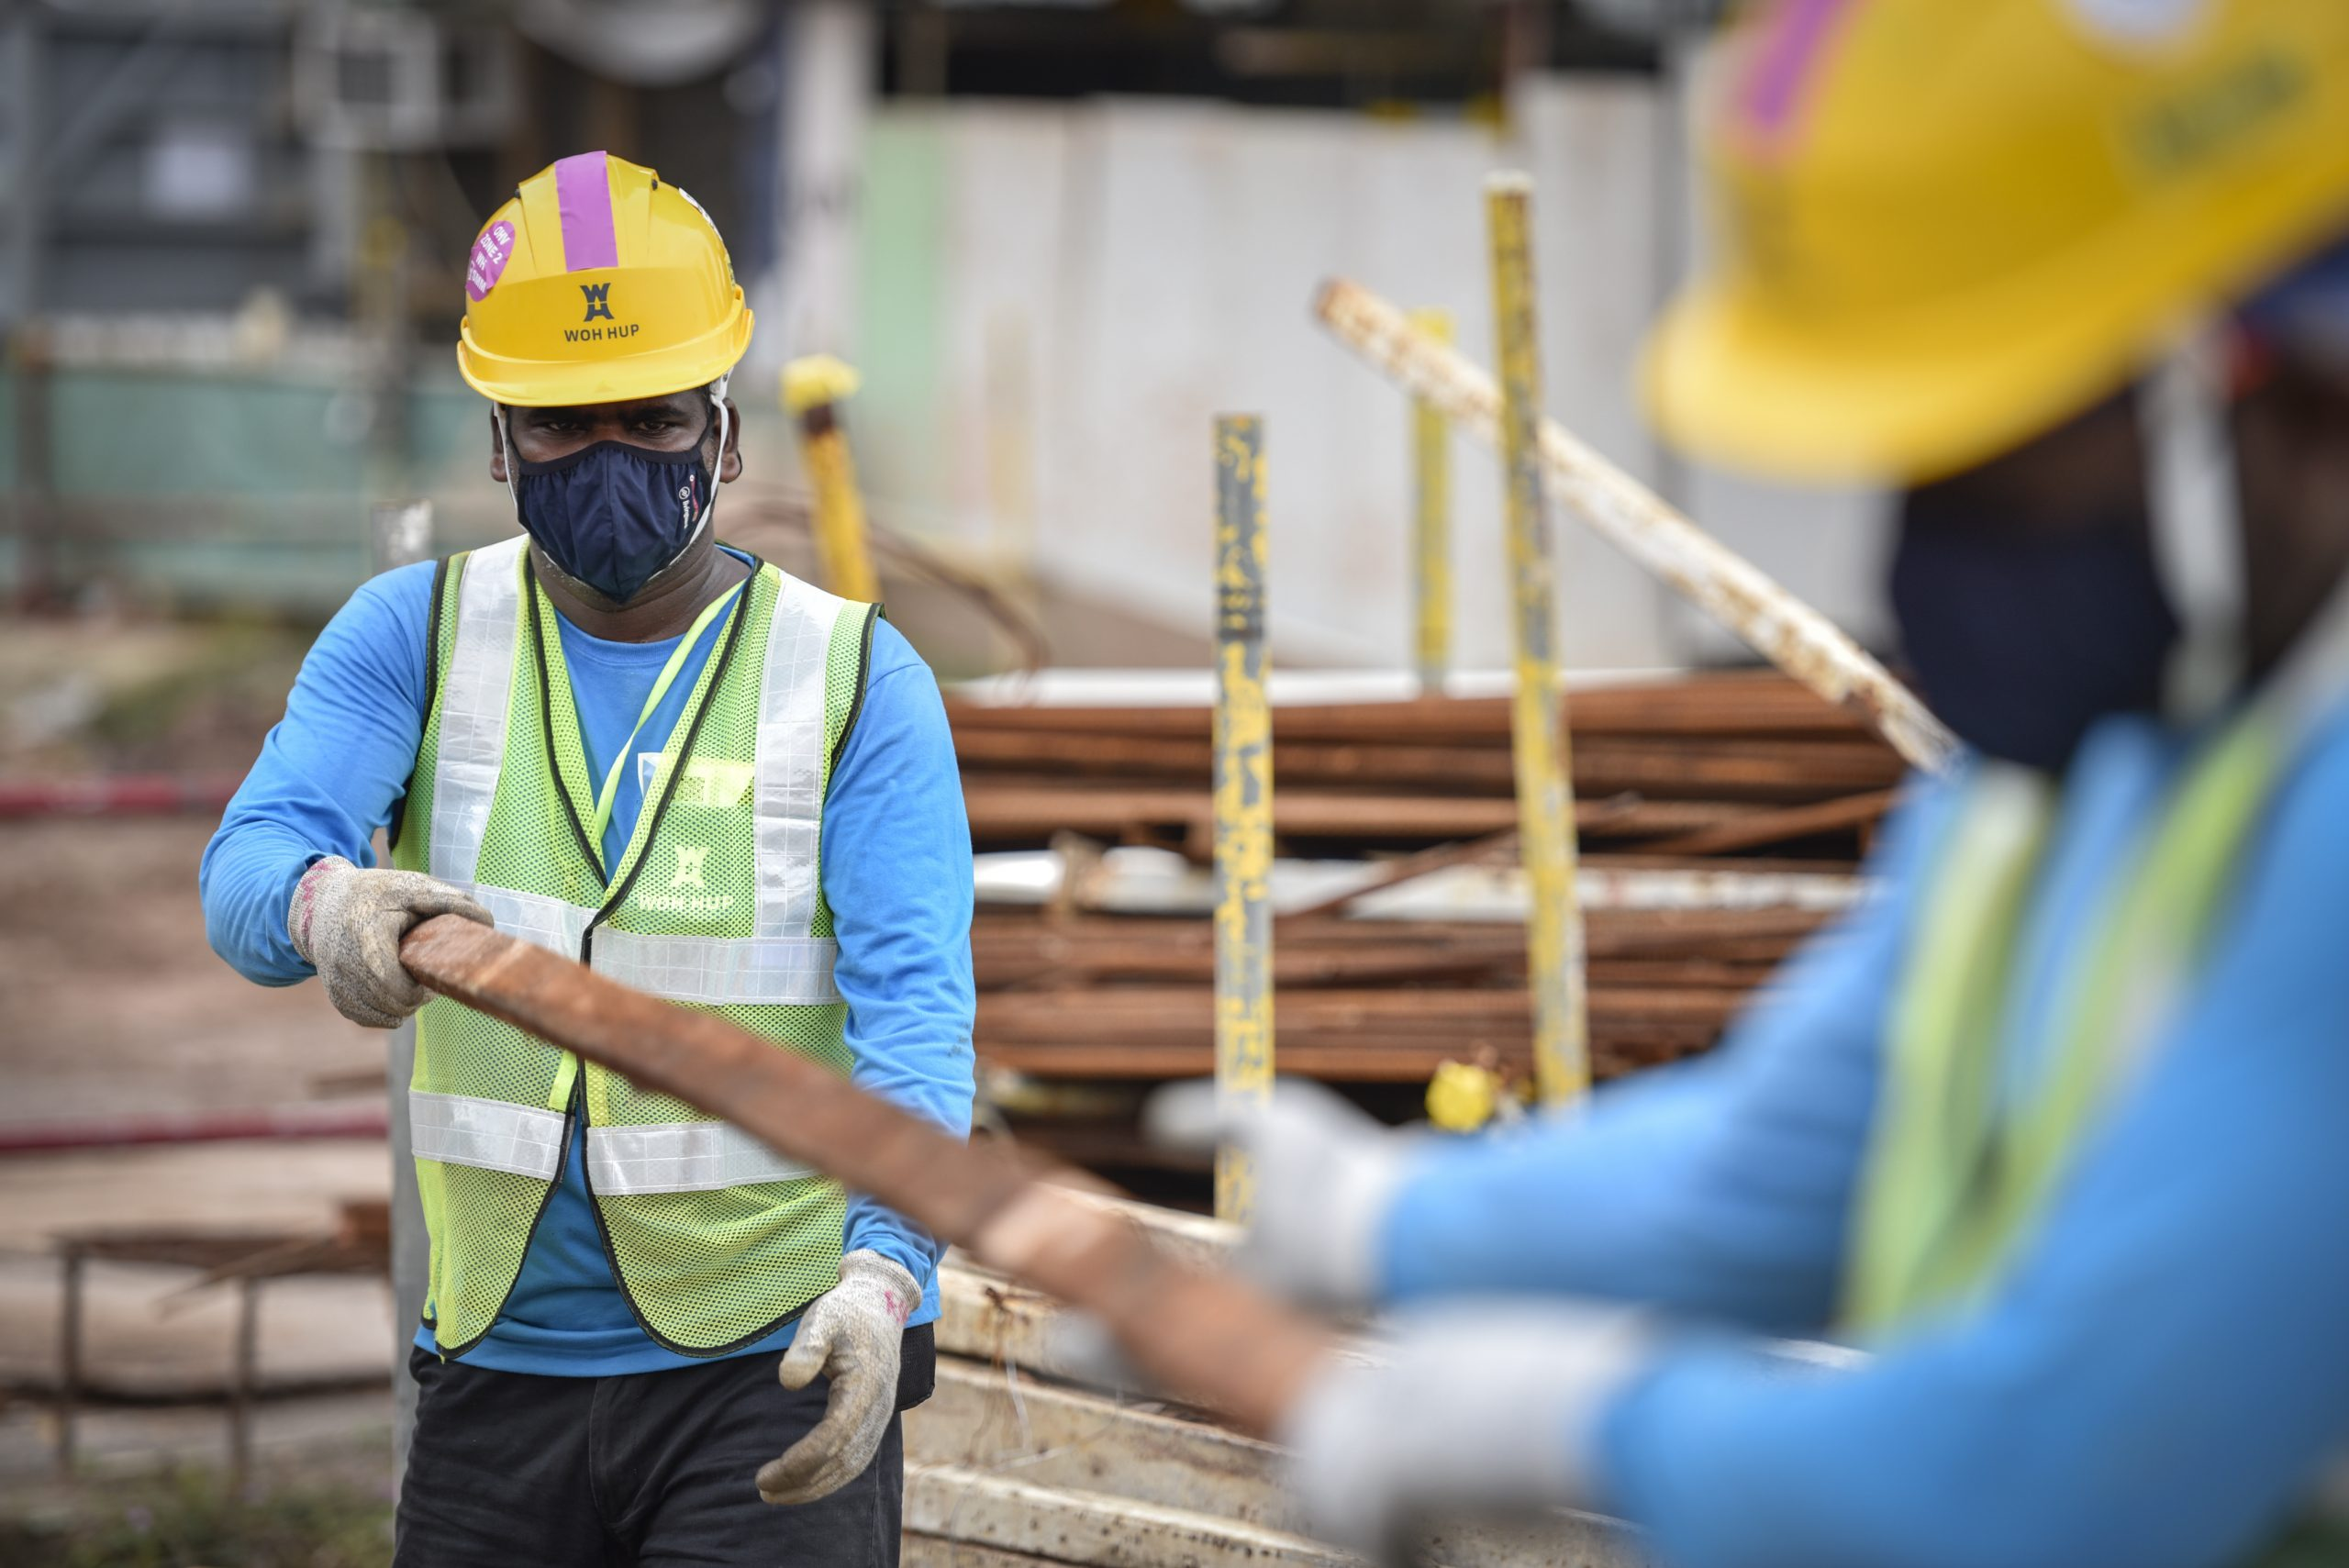 Indian national, Mr Rajendran Samidurai, 35, wearing the reusable mask from Temasek Foundation at work on a site in Holland Village